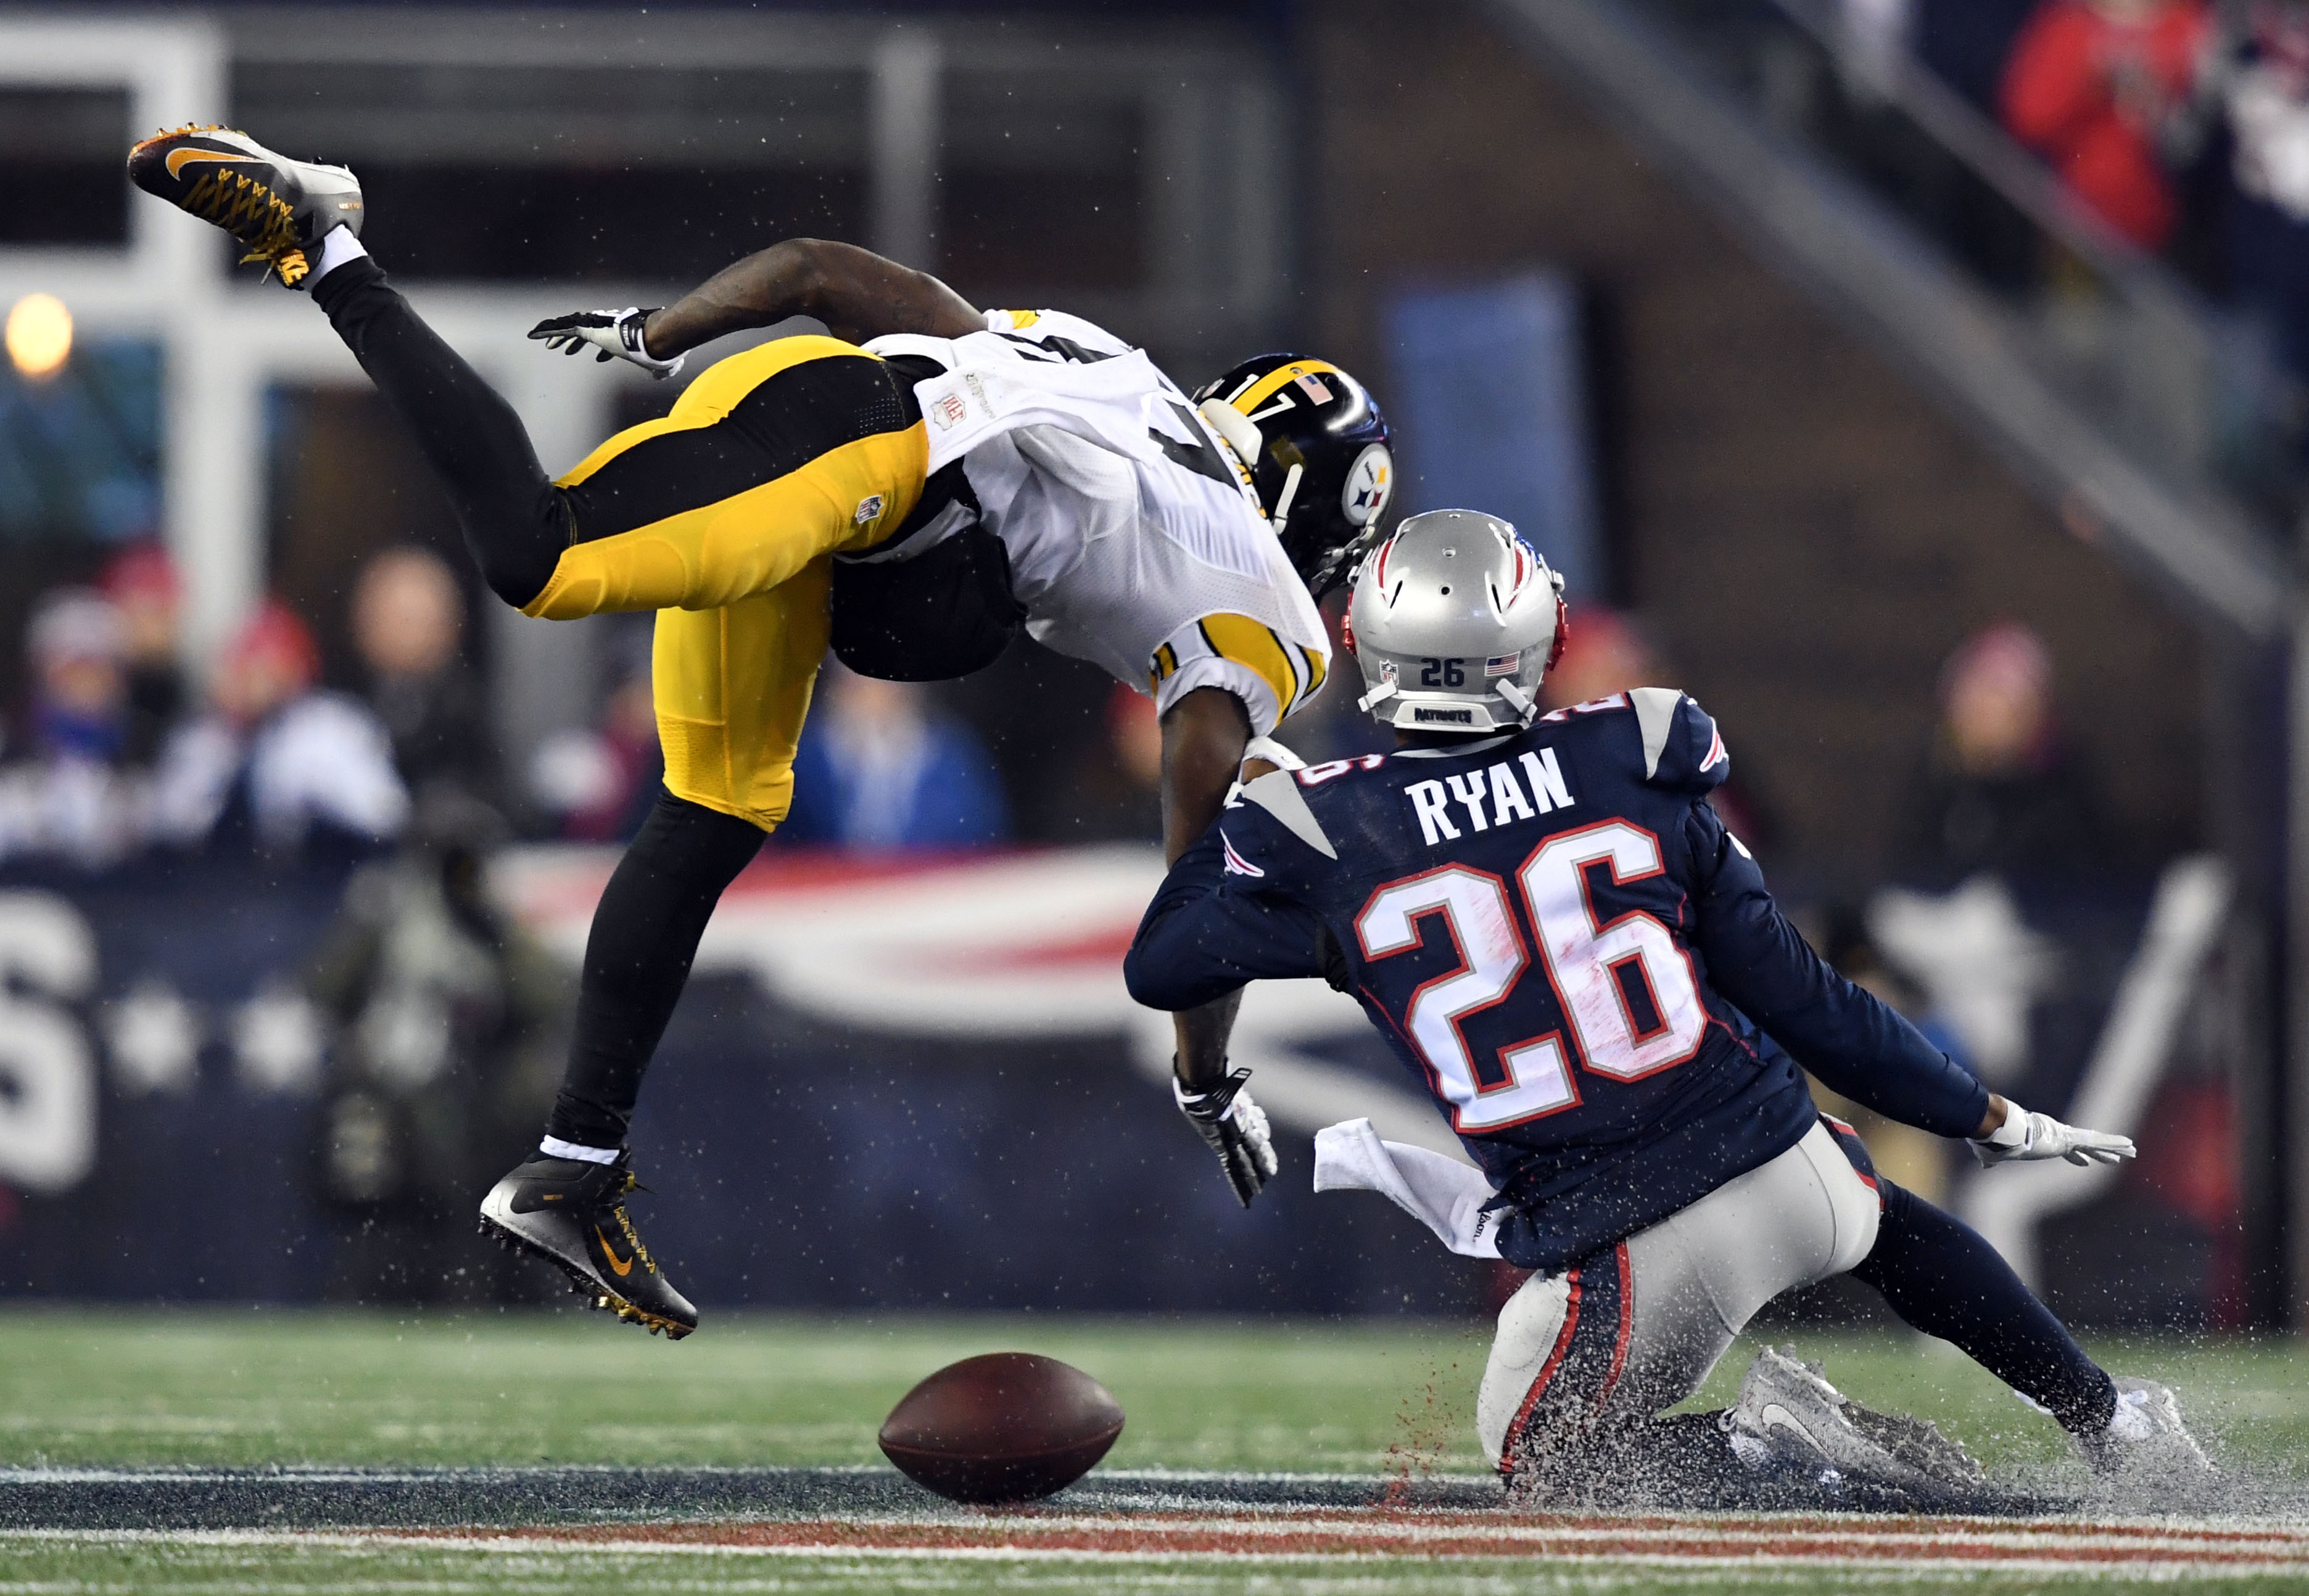 9832831-nfl-afc-championship-pittsburgh-steelers-at-new-england-patriots